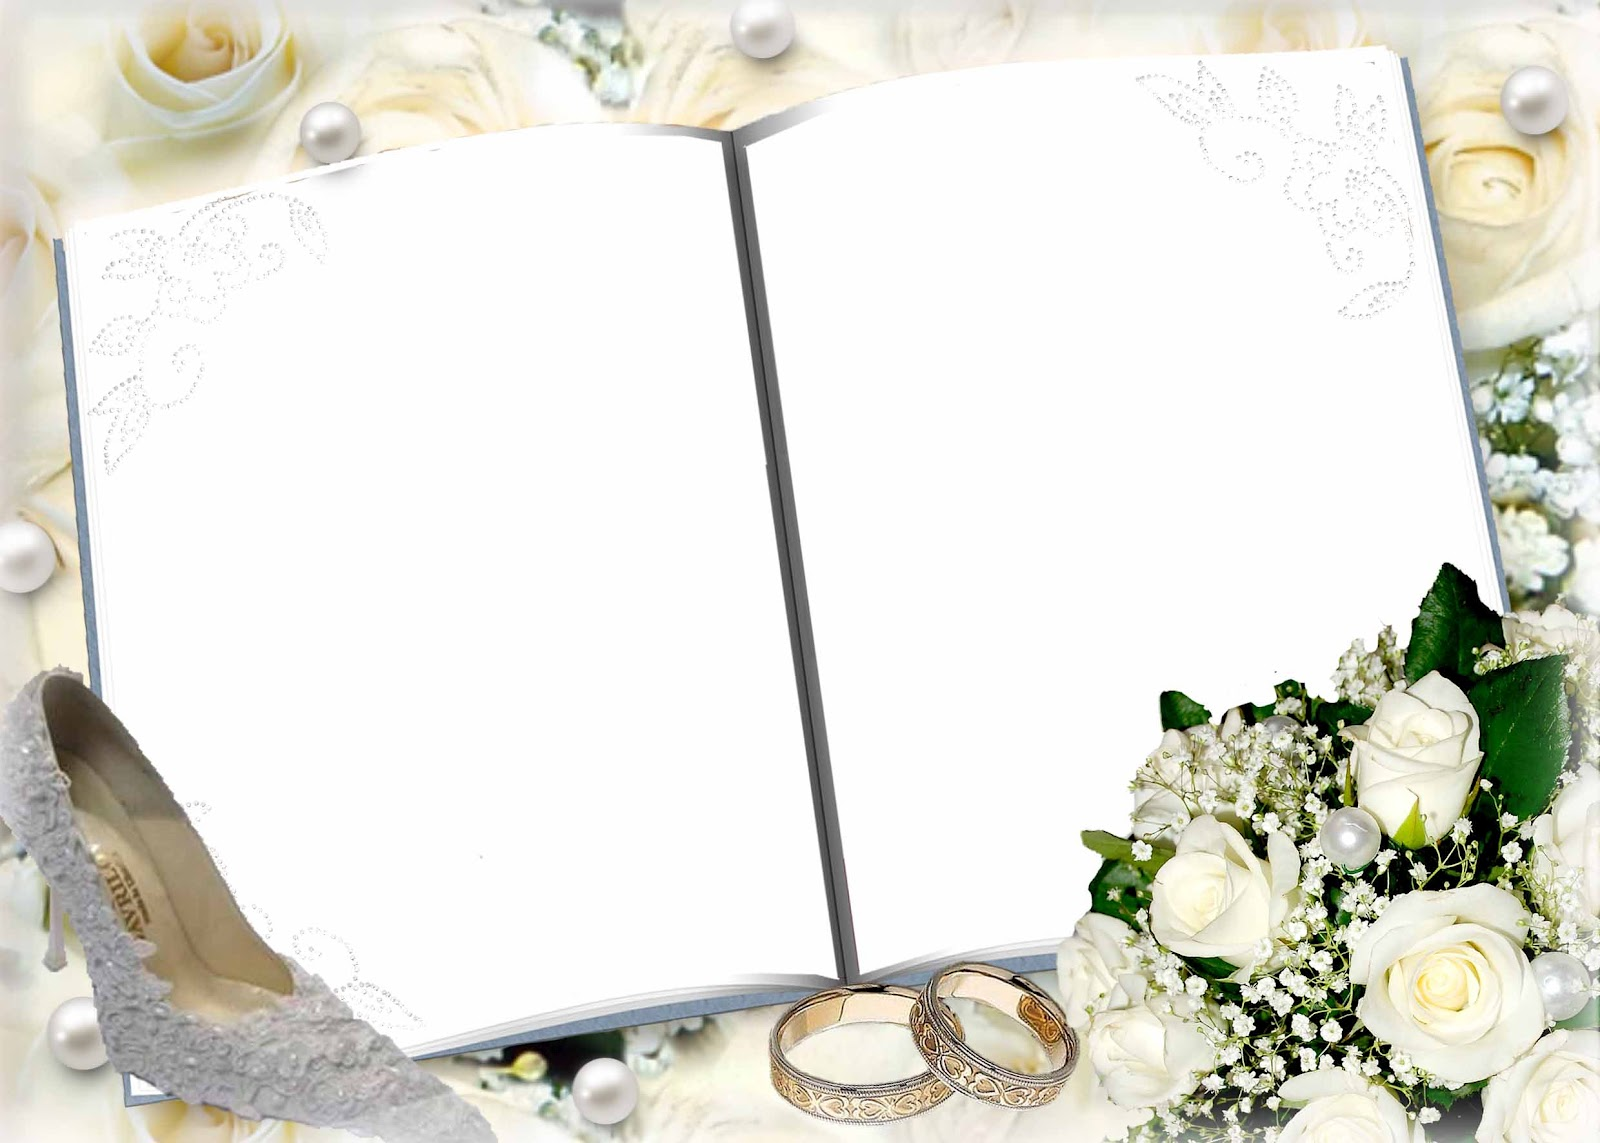 wedding photo frame png transparent background free download 35180 freeiconspng wedding photo frame png transparent